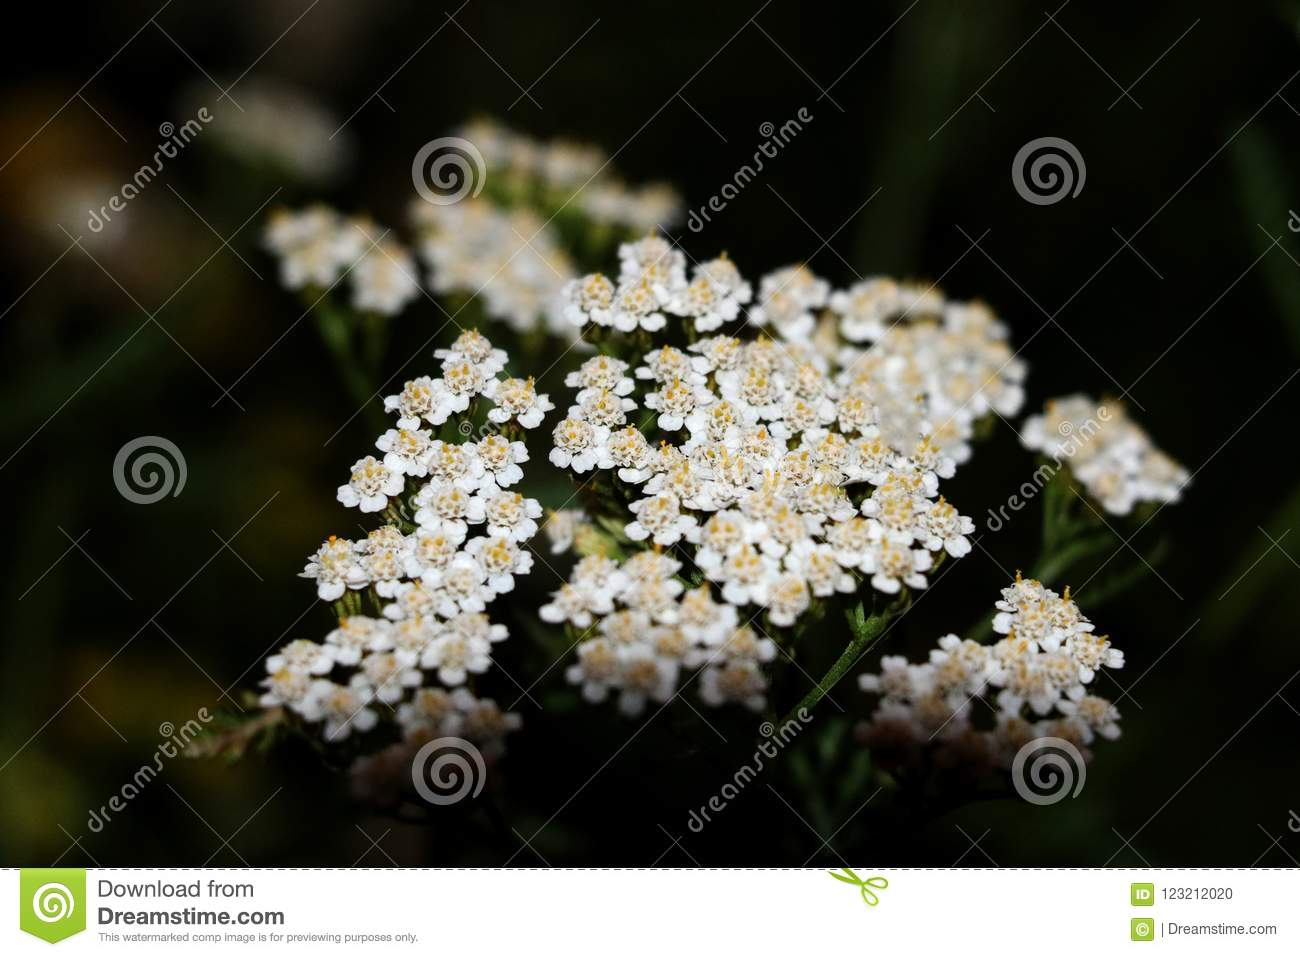 Common yarrow Achillea millefoliumwhite flowers close up top view as floral background against green blurred grass.